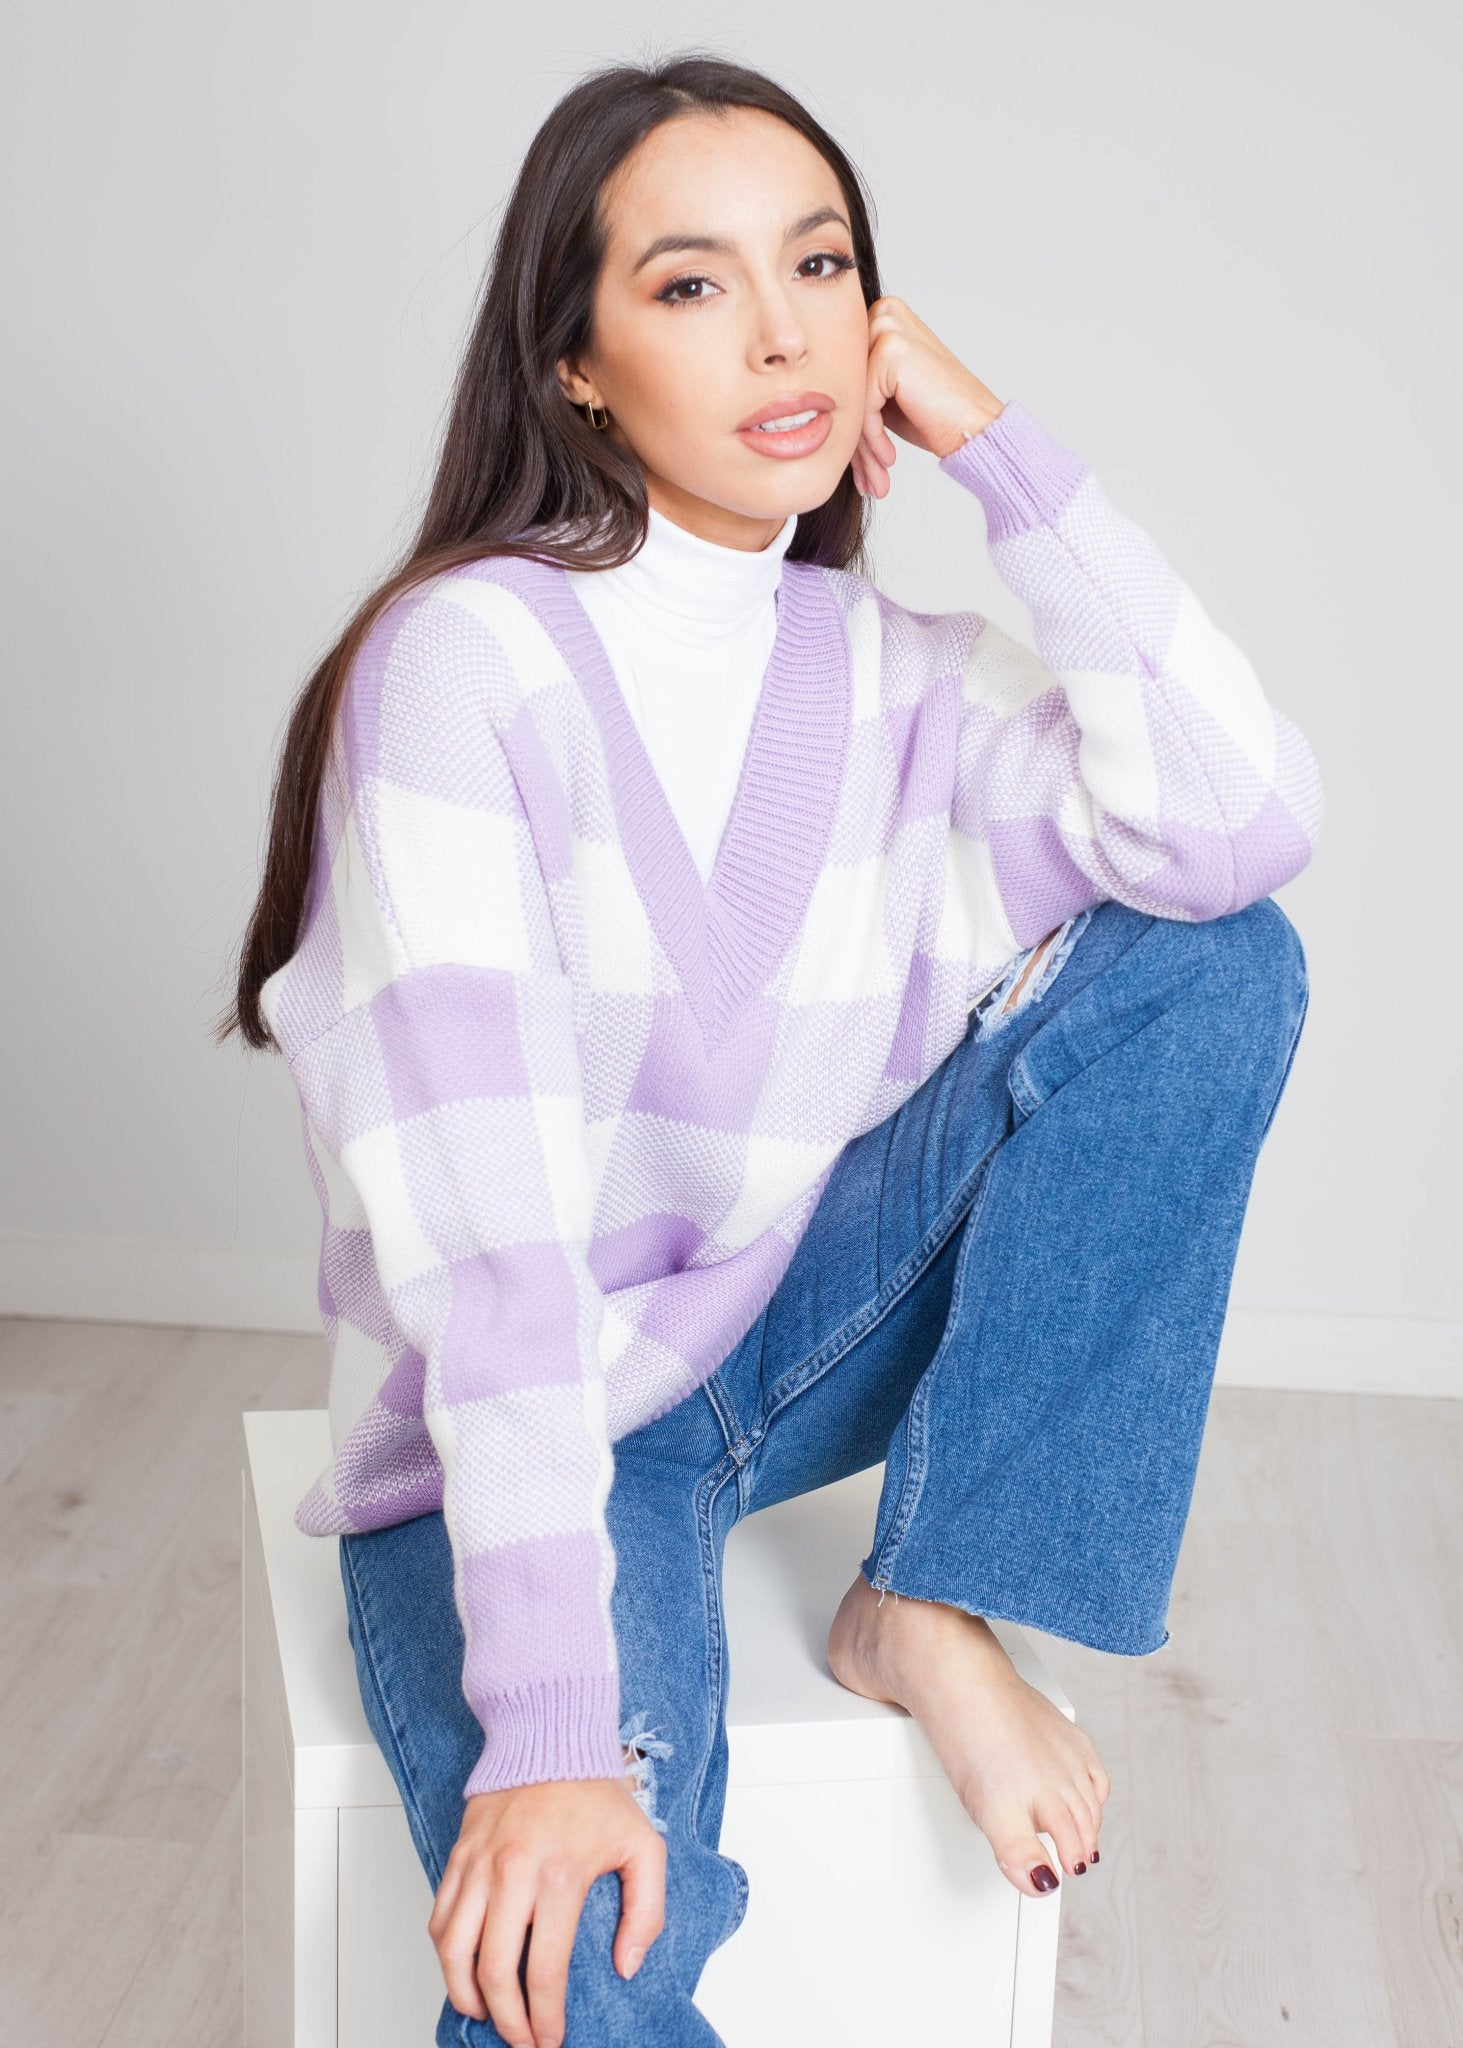 Indie V-Neck Jumper In Lilac Check - The Walk in Wardrobe